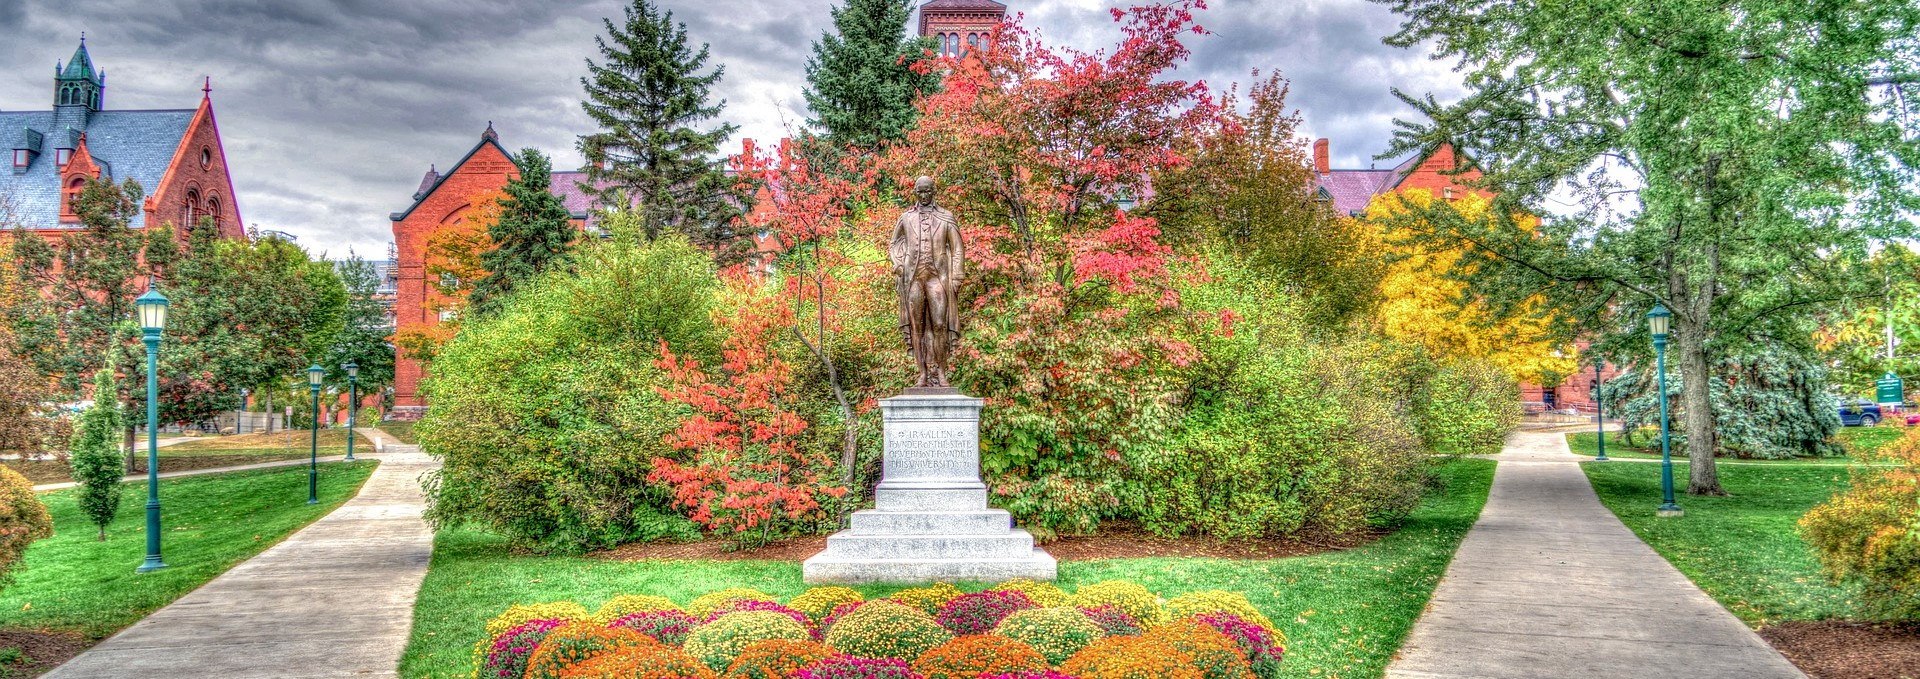 One of the Gardens inside the 227 year-old University of Vermont | Kids Car Donations